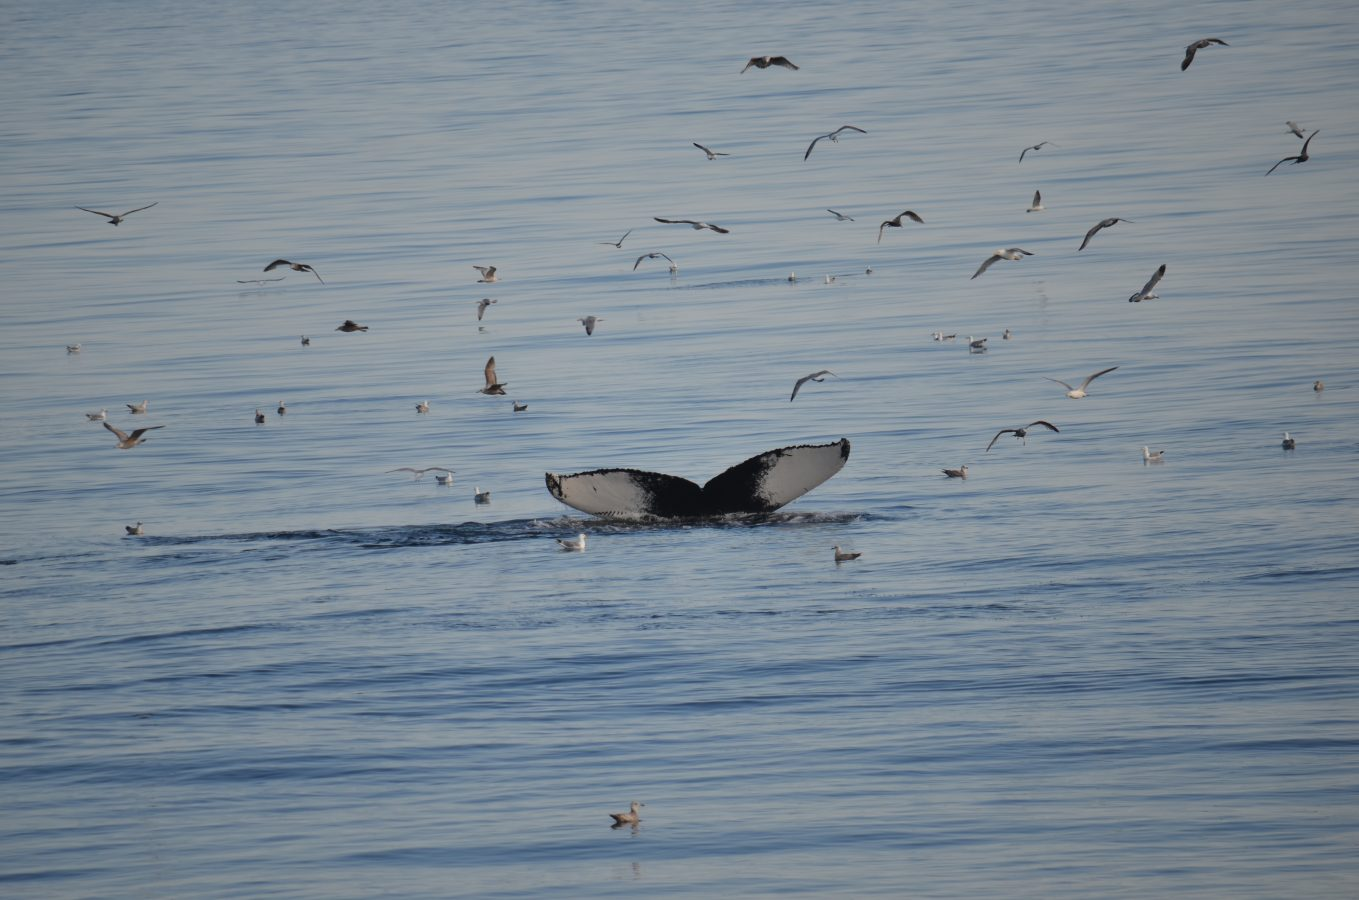 whale tail surrounded by birds